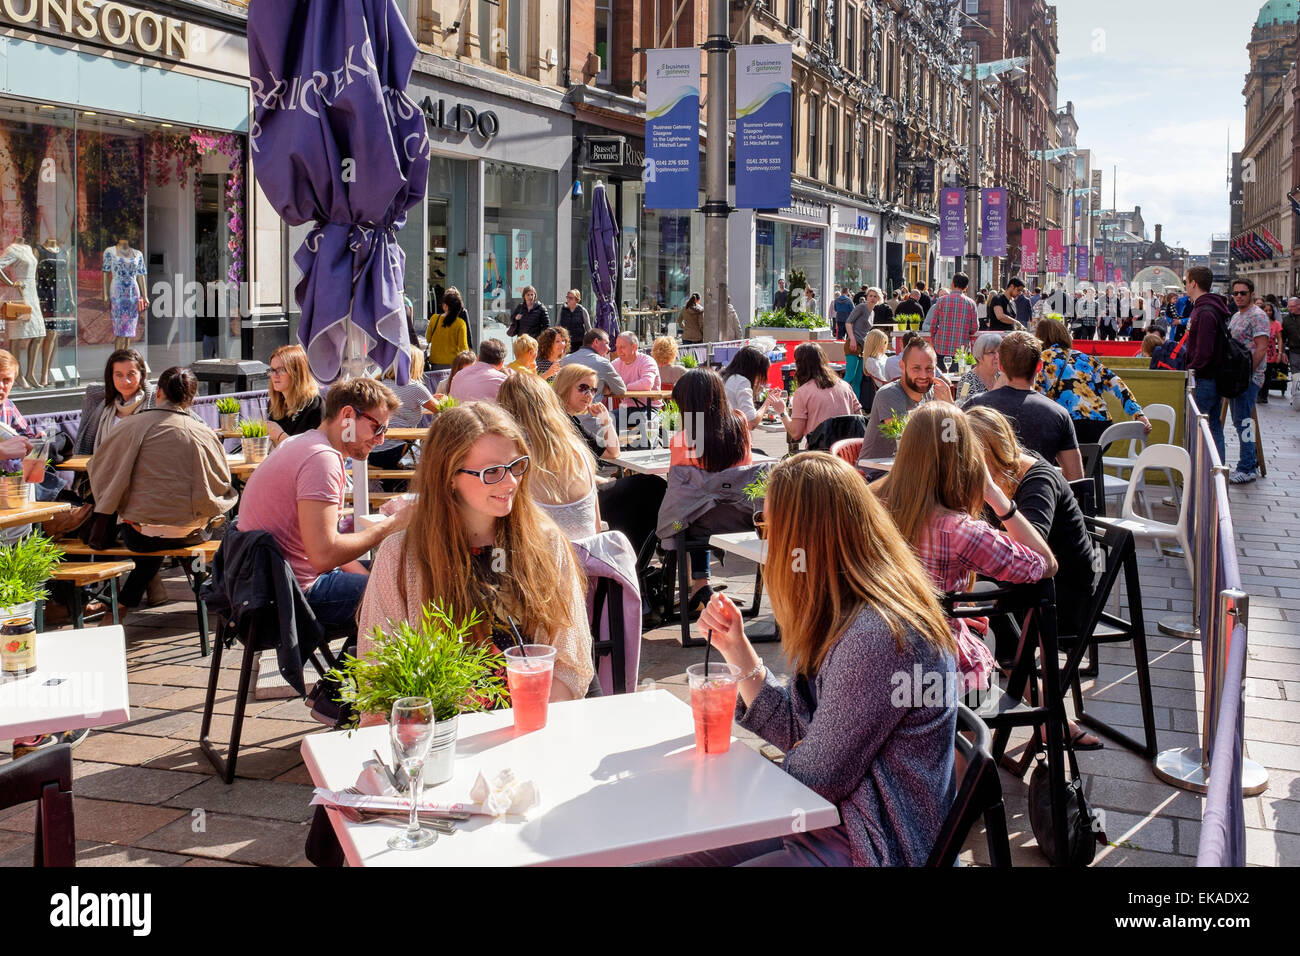 Restaurants and bars in Buchanan Street, Glasgow, UK - Stock Image